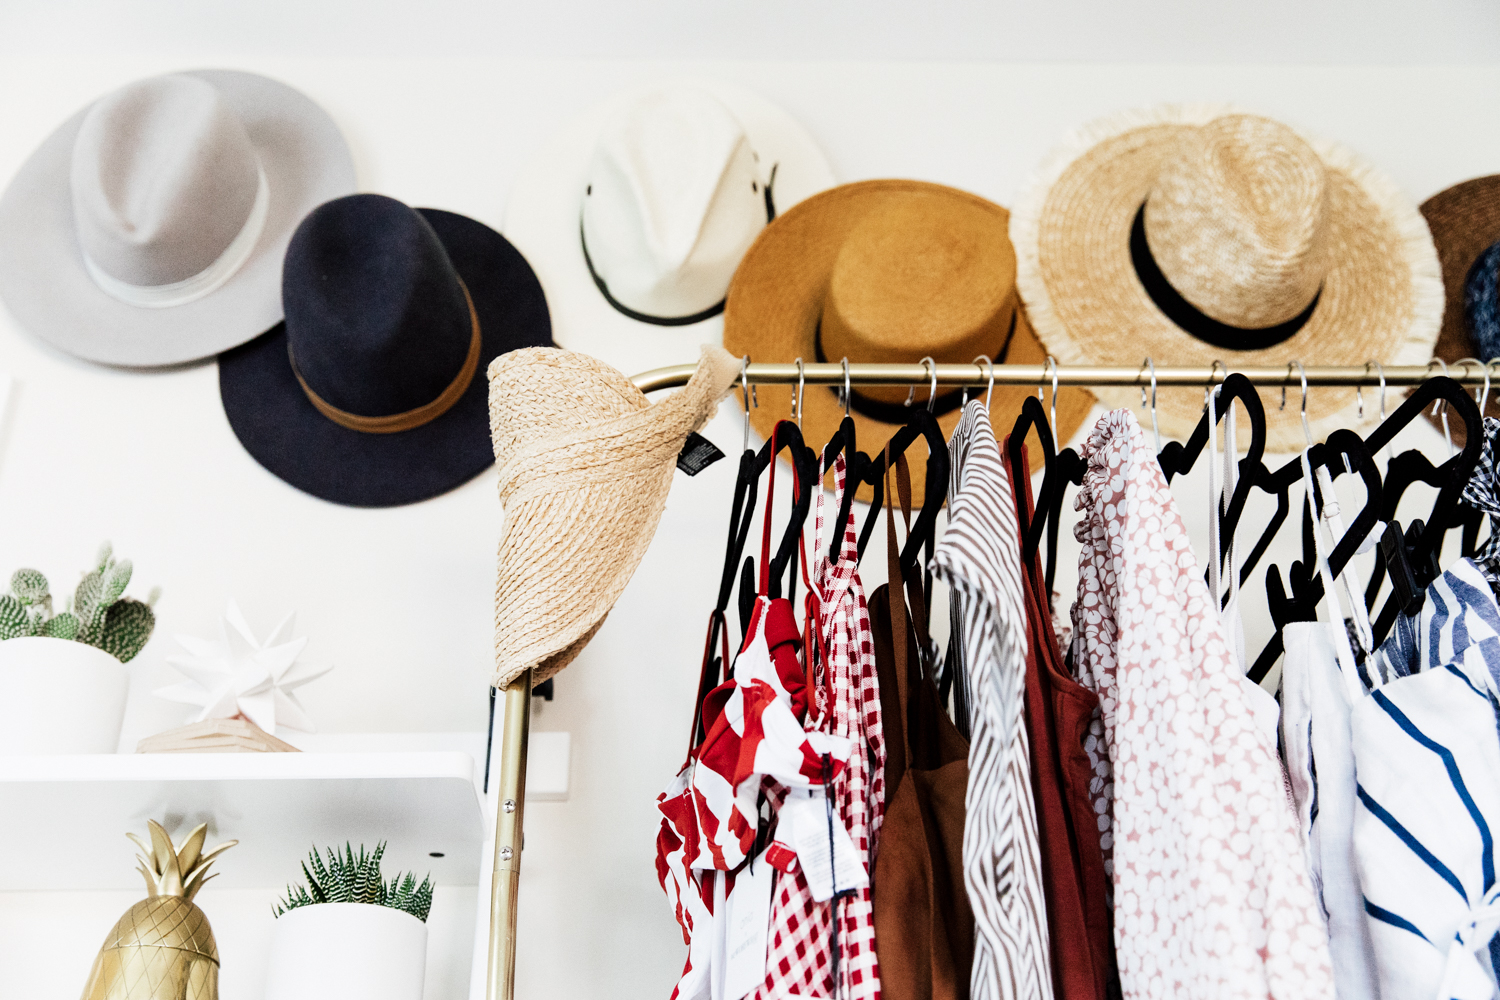 Favorite hat brands: Janessa Leone and Lack of Color